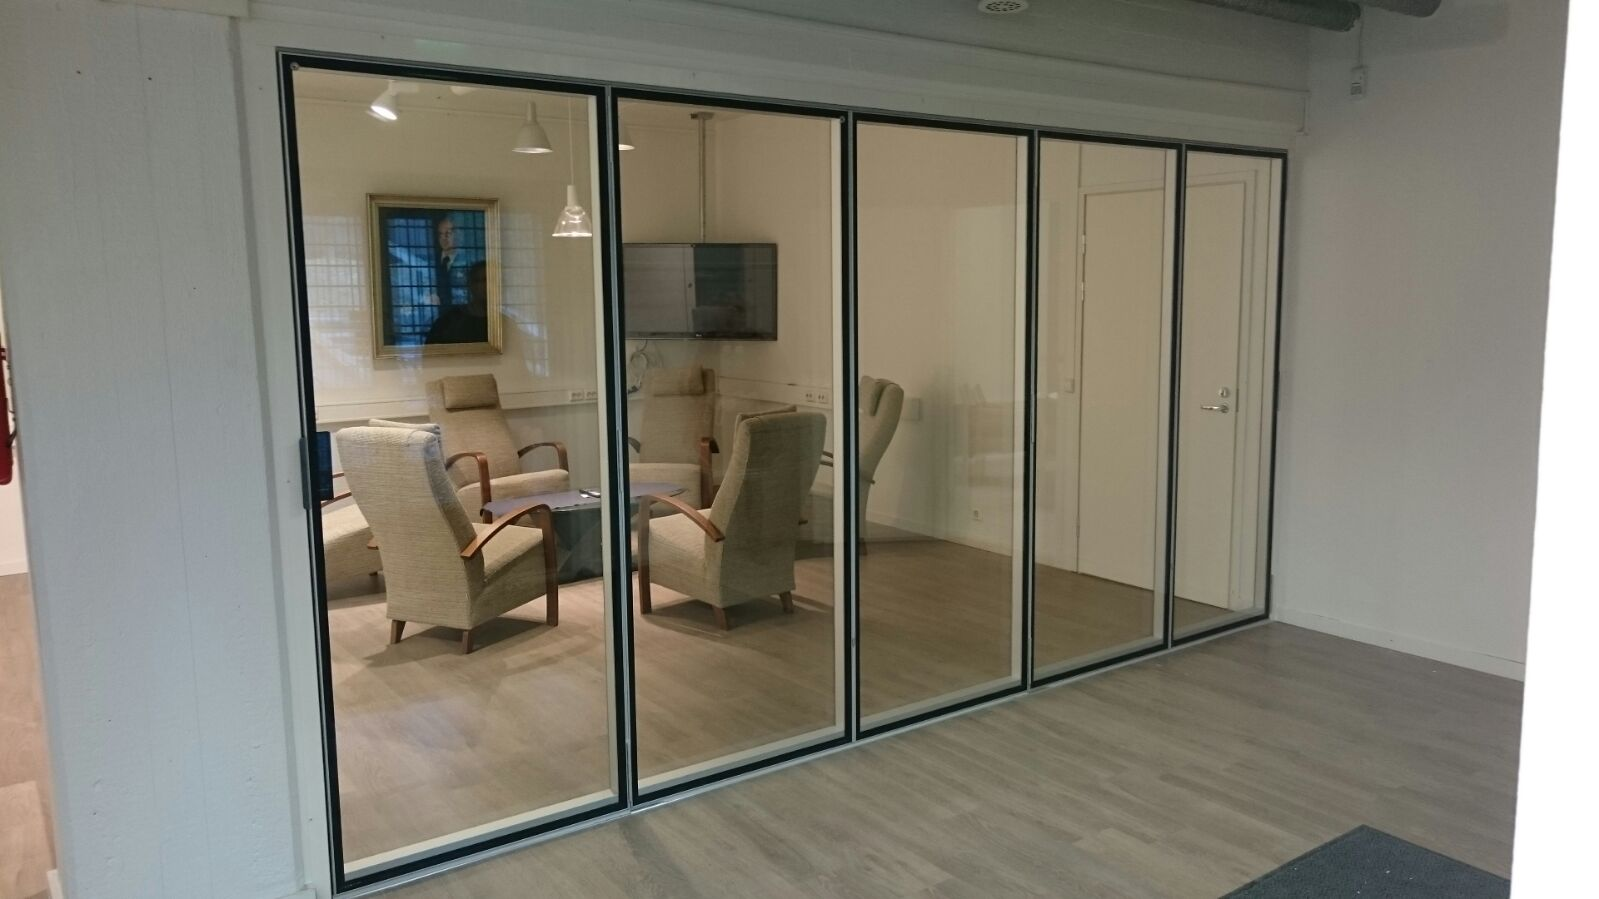 London wall launches new acoustic folding glass wall system for Folding glass walls